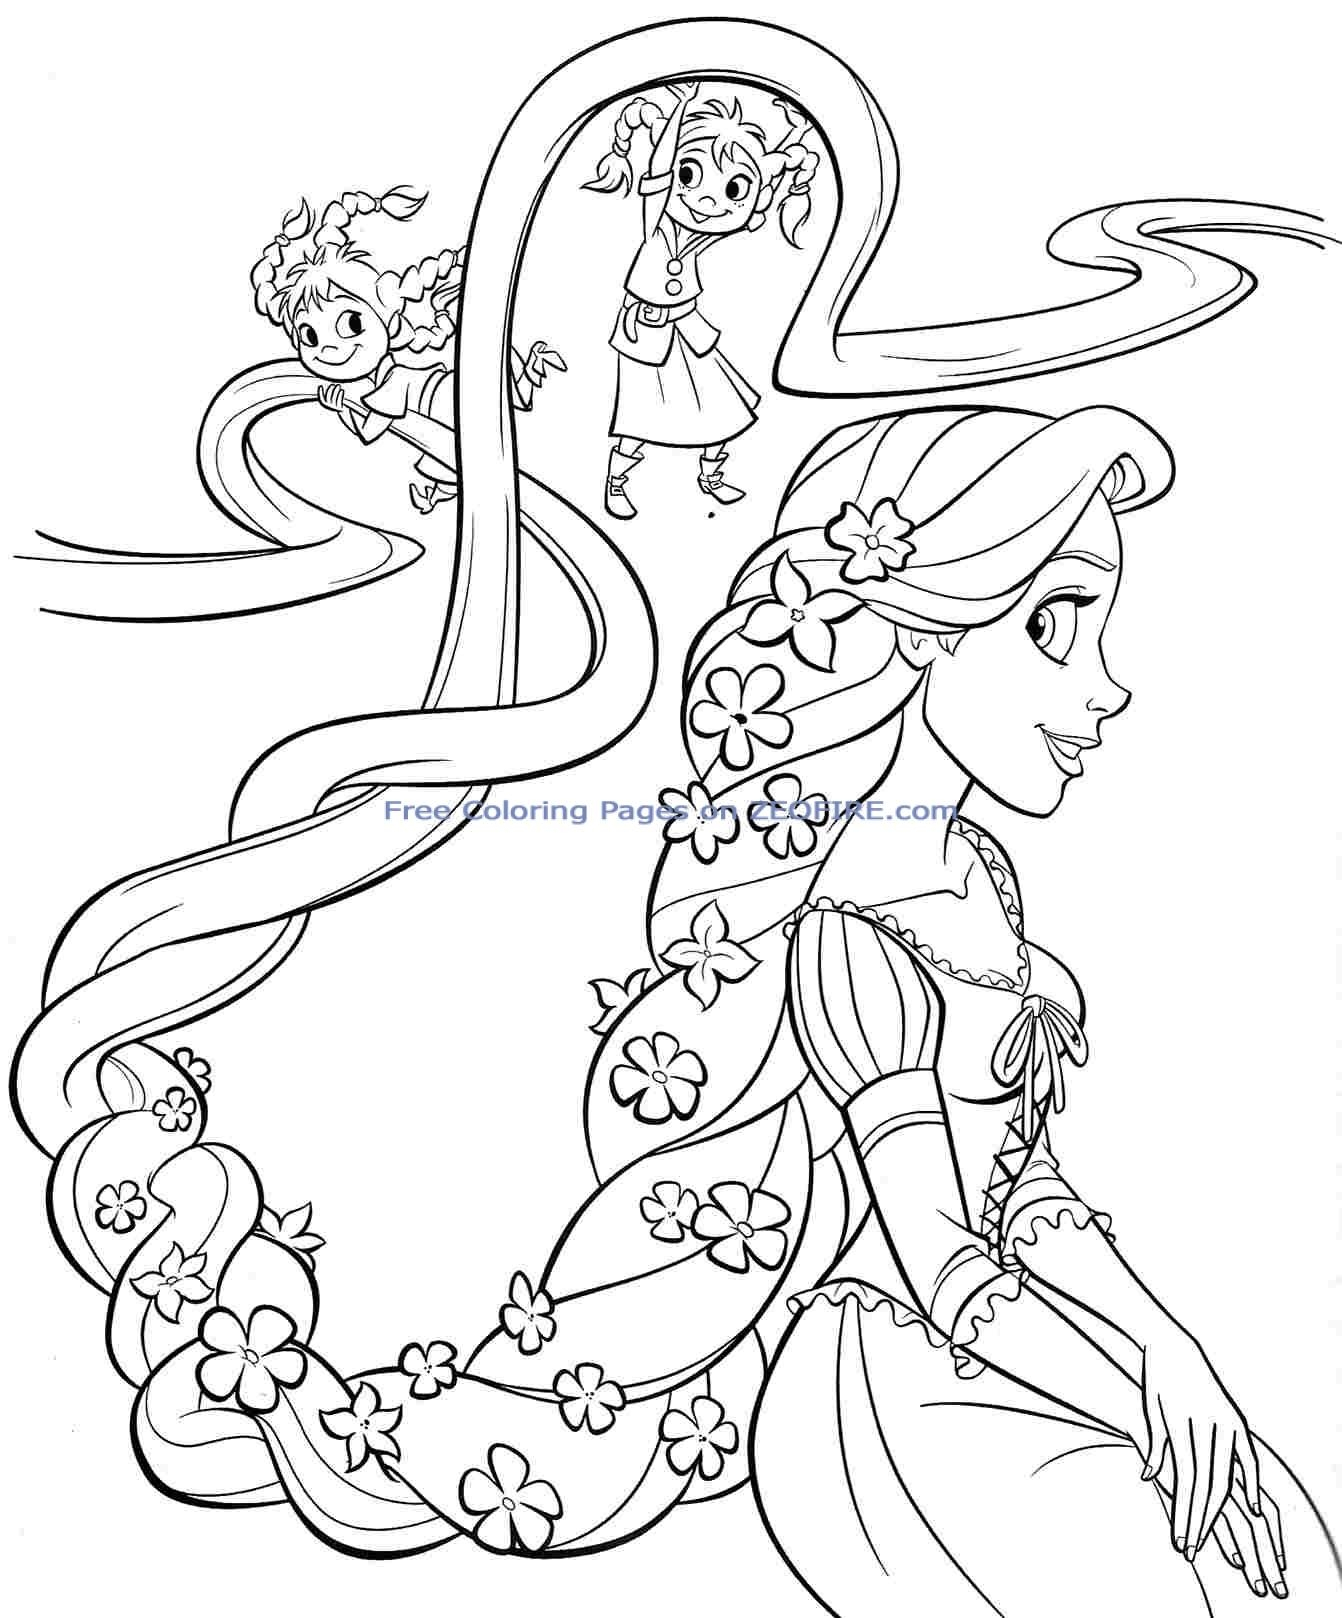 Baby Princess Coloring Pages To Download And Print For Free Printable Coloring Pages Princess